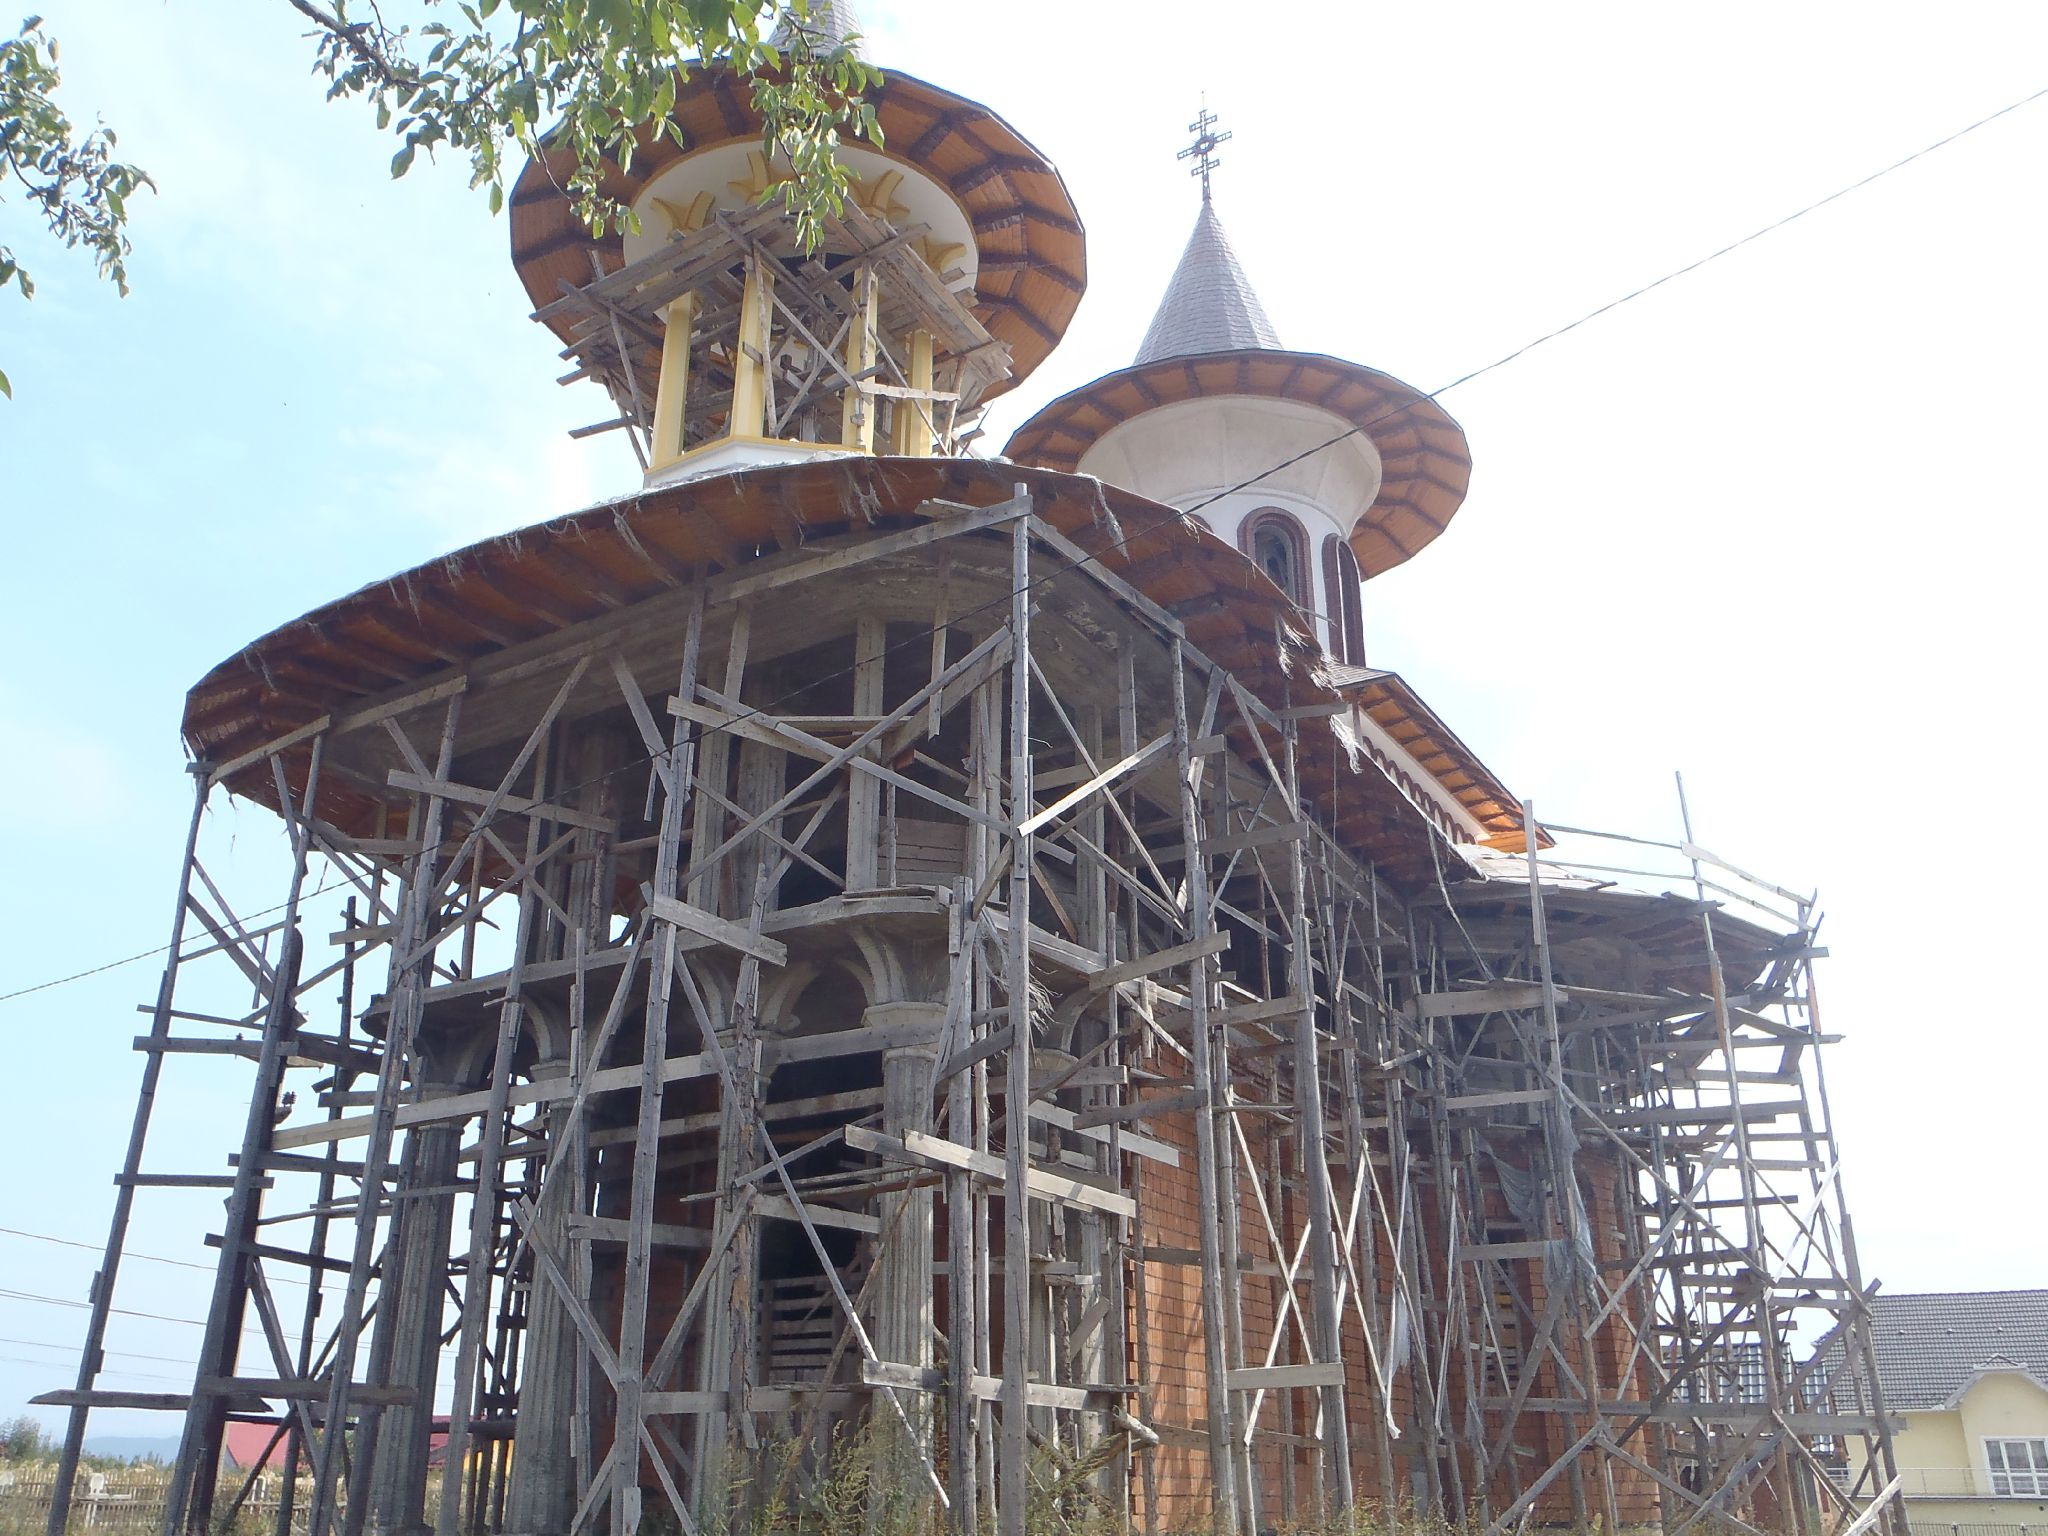 roumanie - restauration d'une eglise orthodoxe encore un echaffaudage local